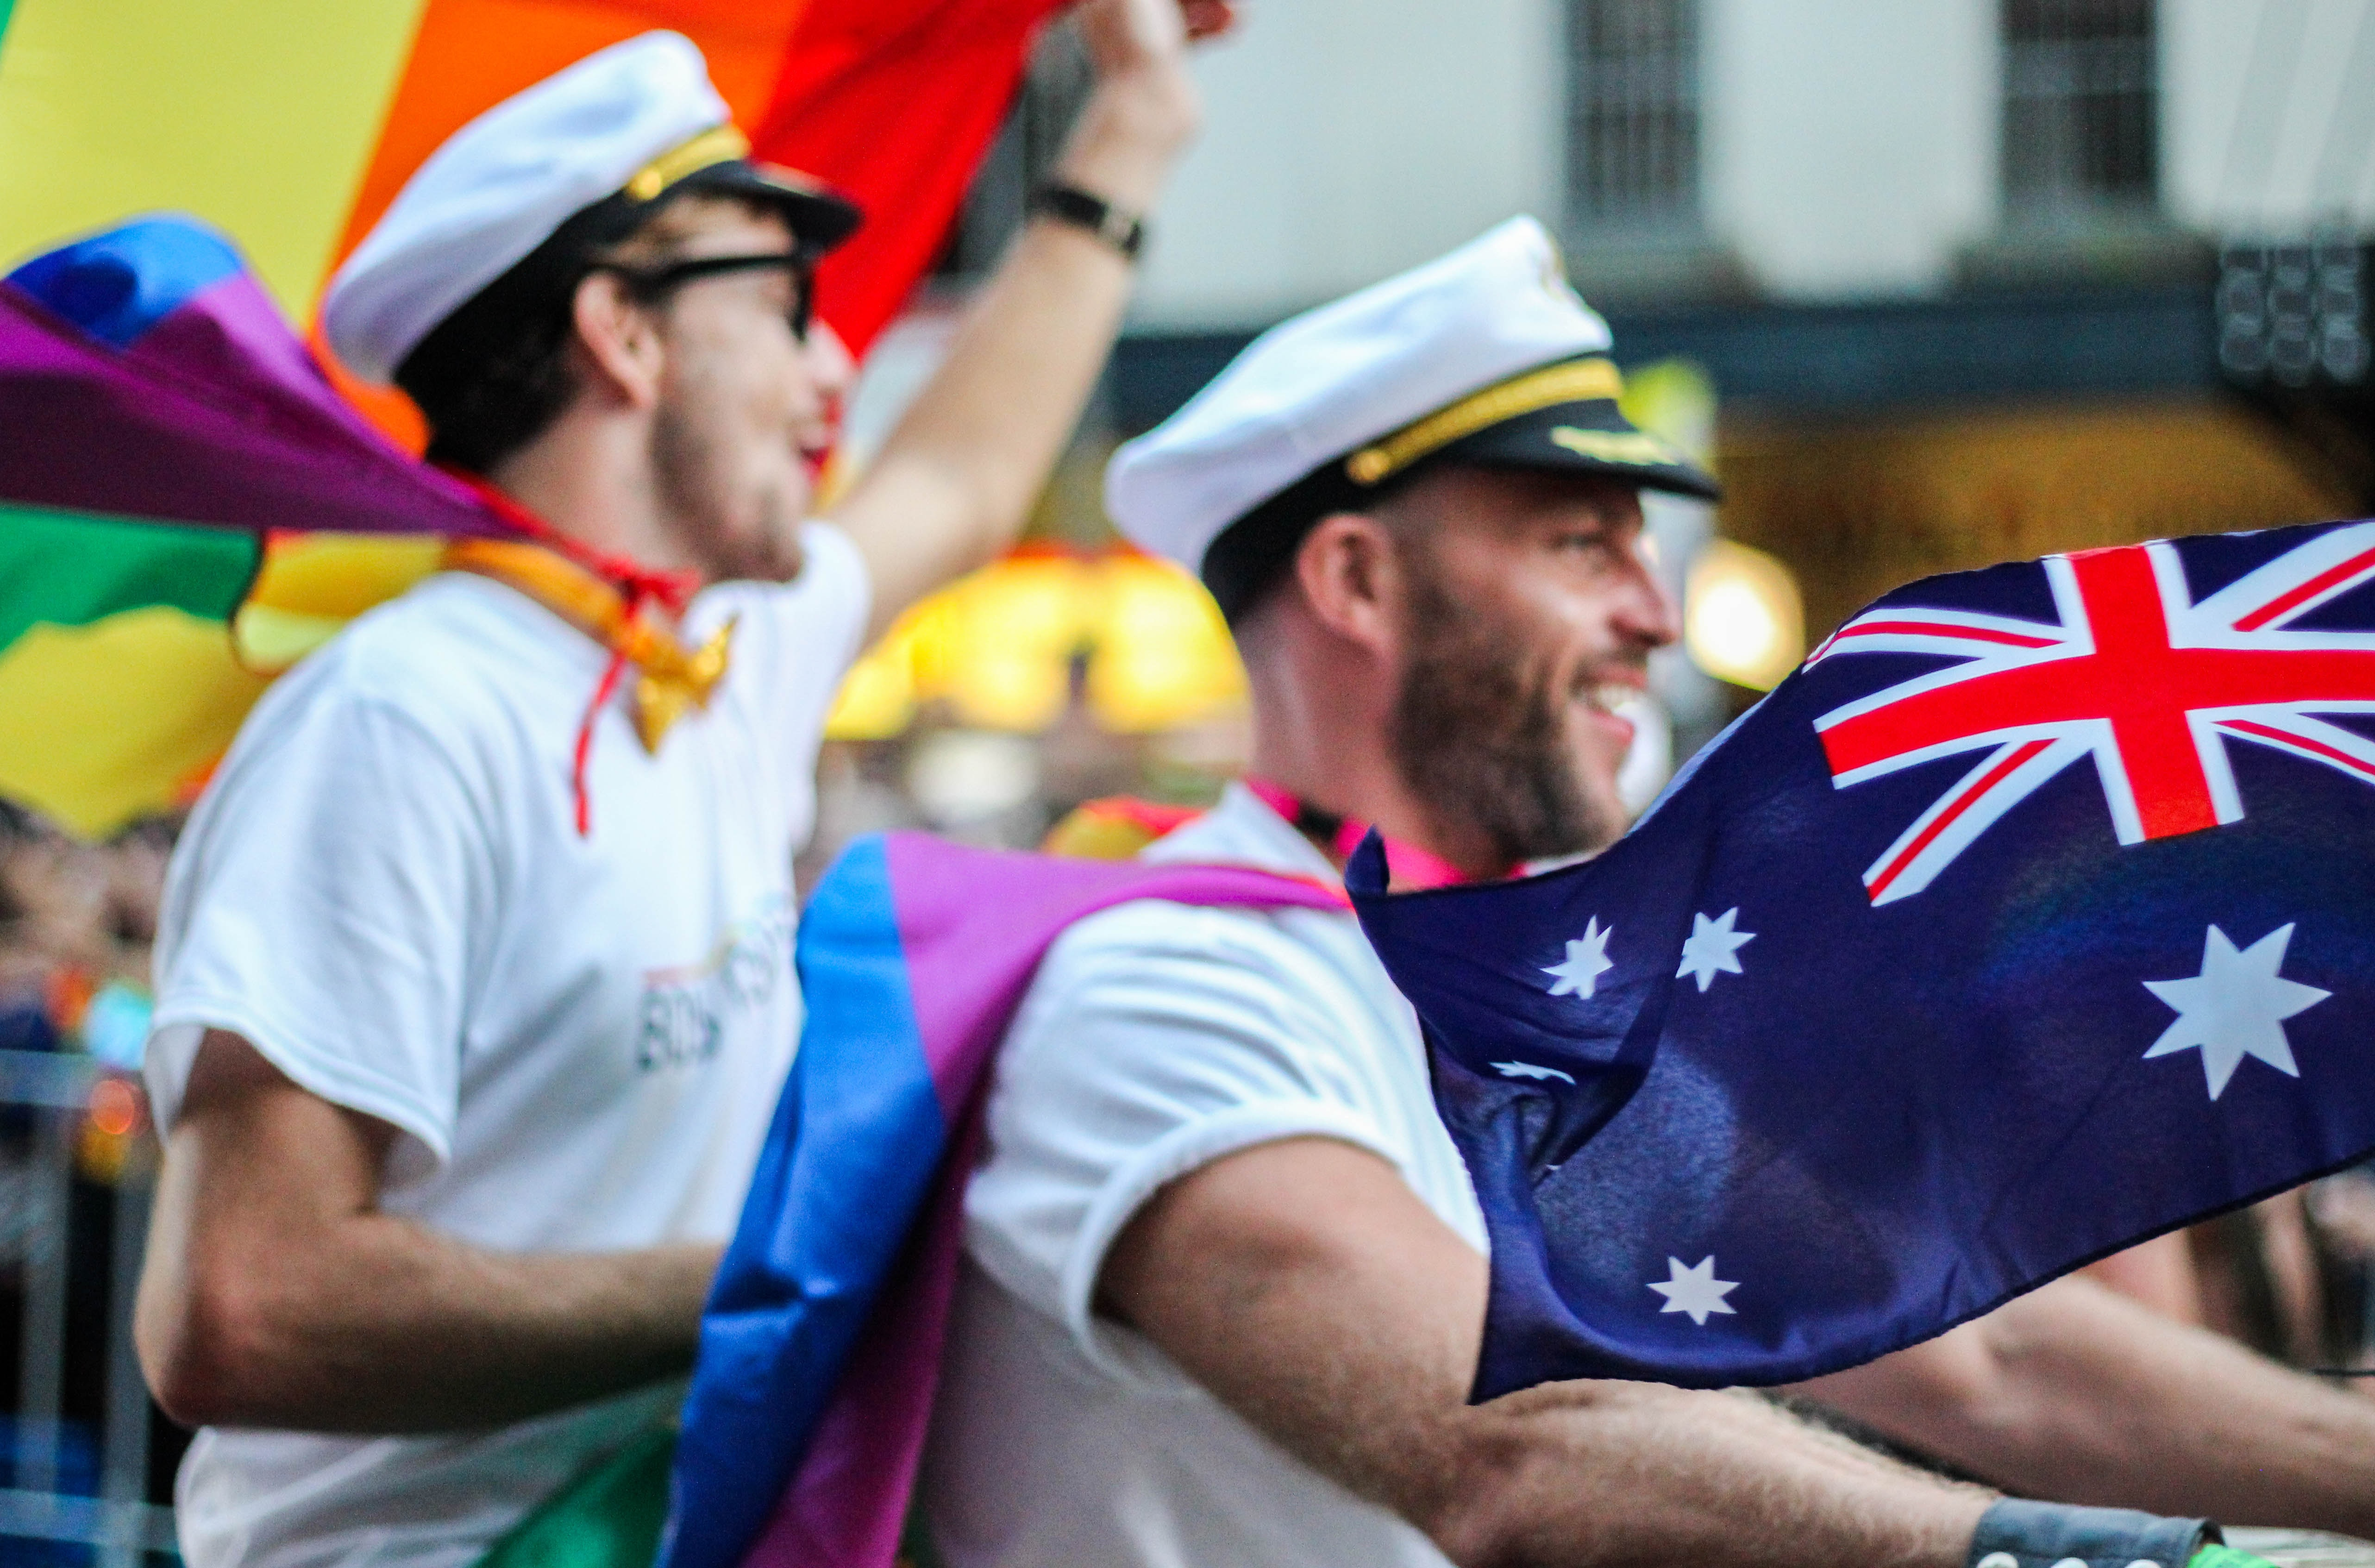 A photo of two men marching in a parade. One is holding up an LGBTQ pride flag, and the other is holding the flag of Great Britain